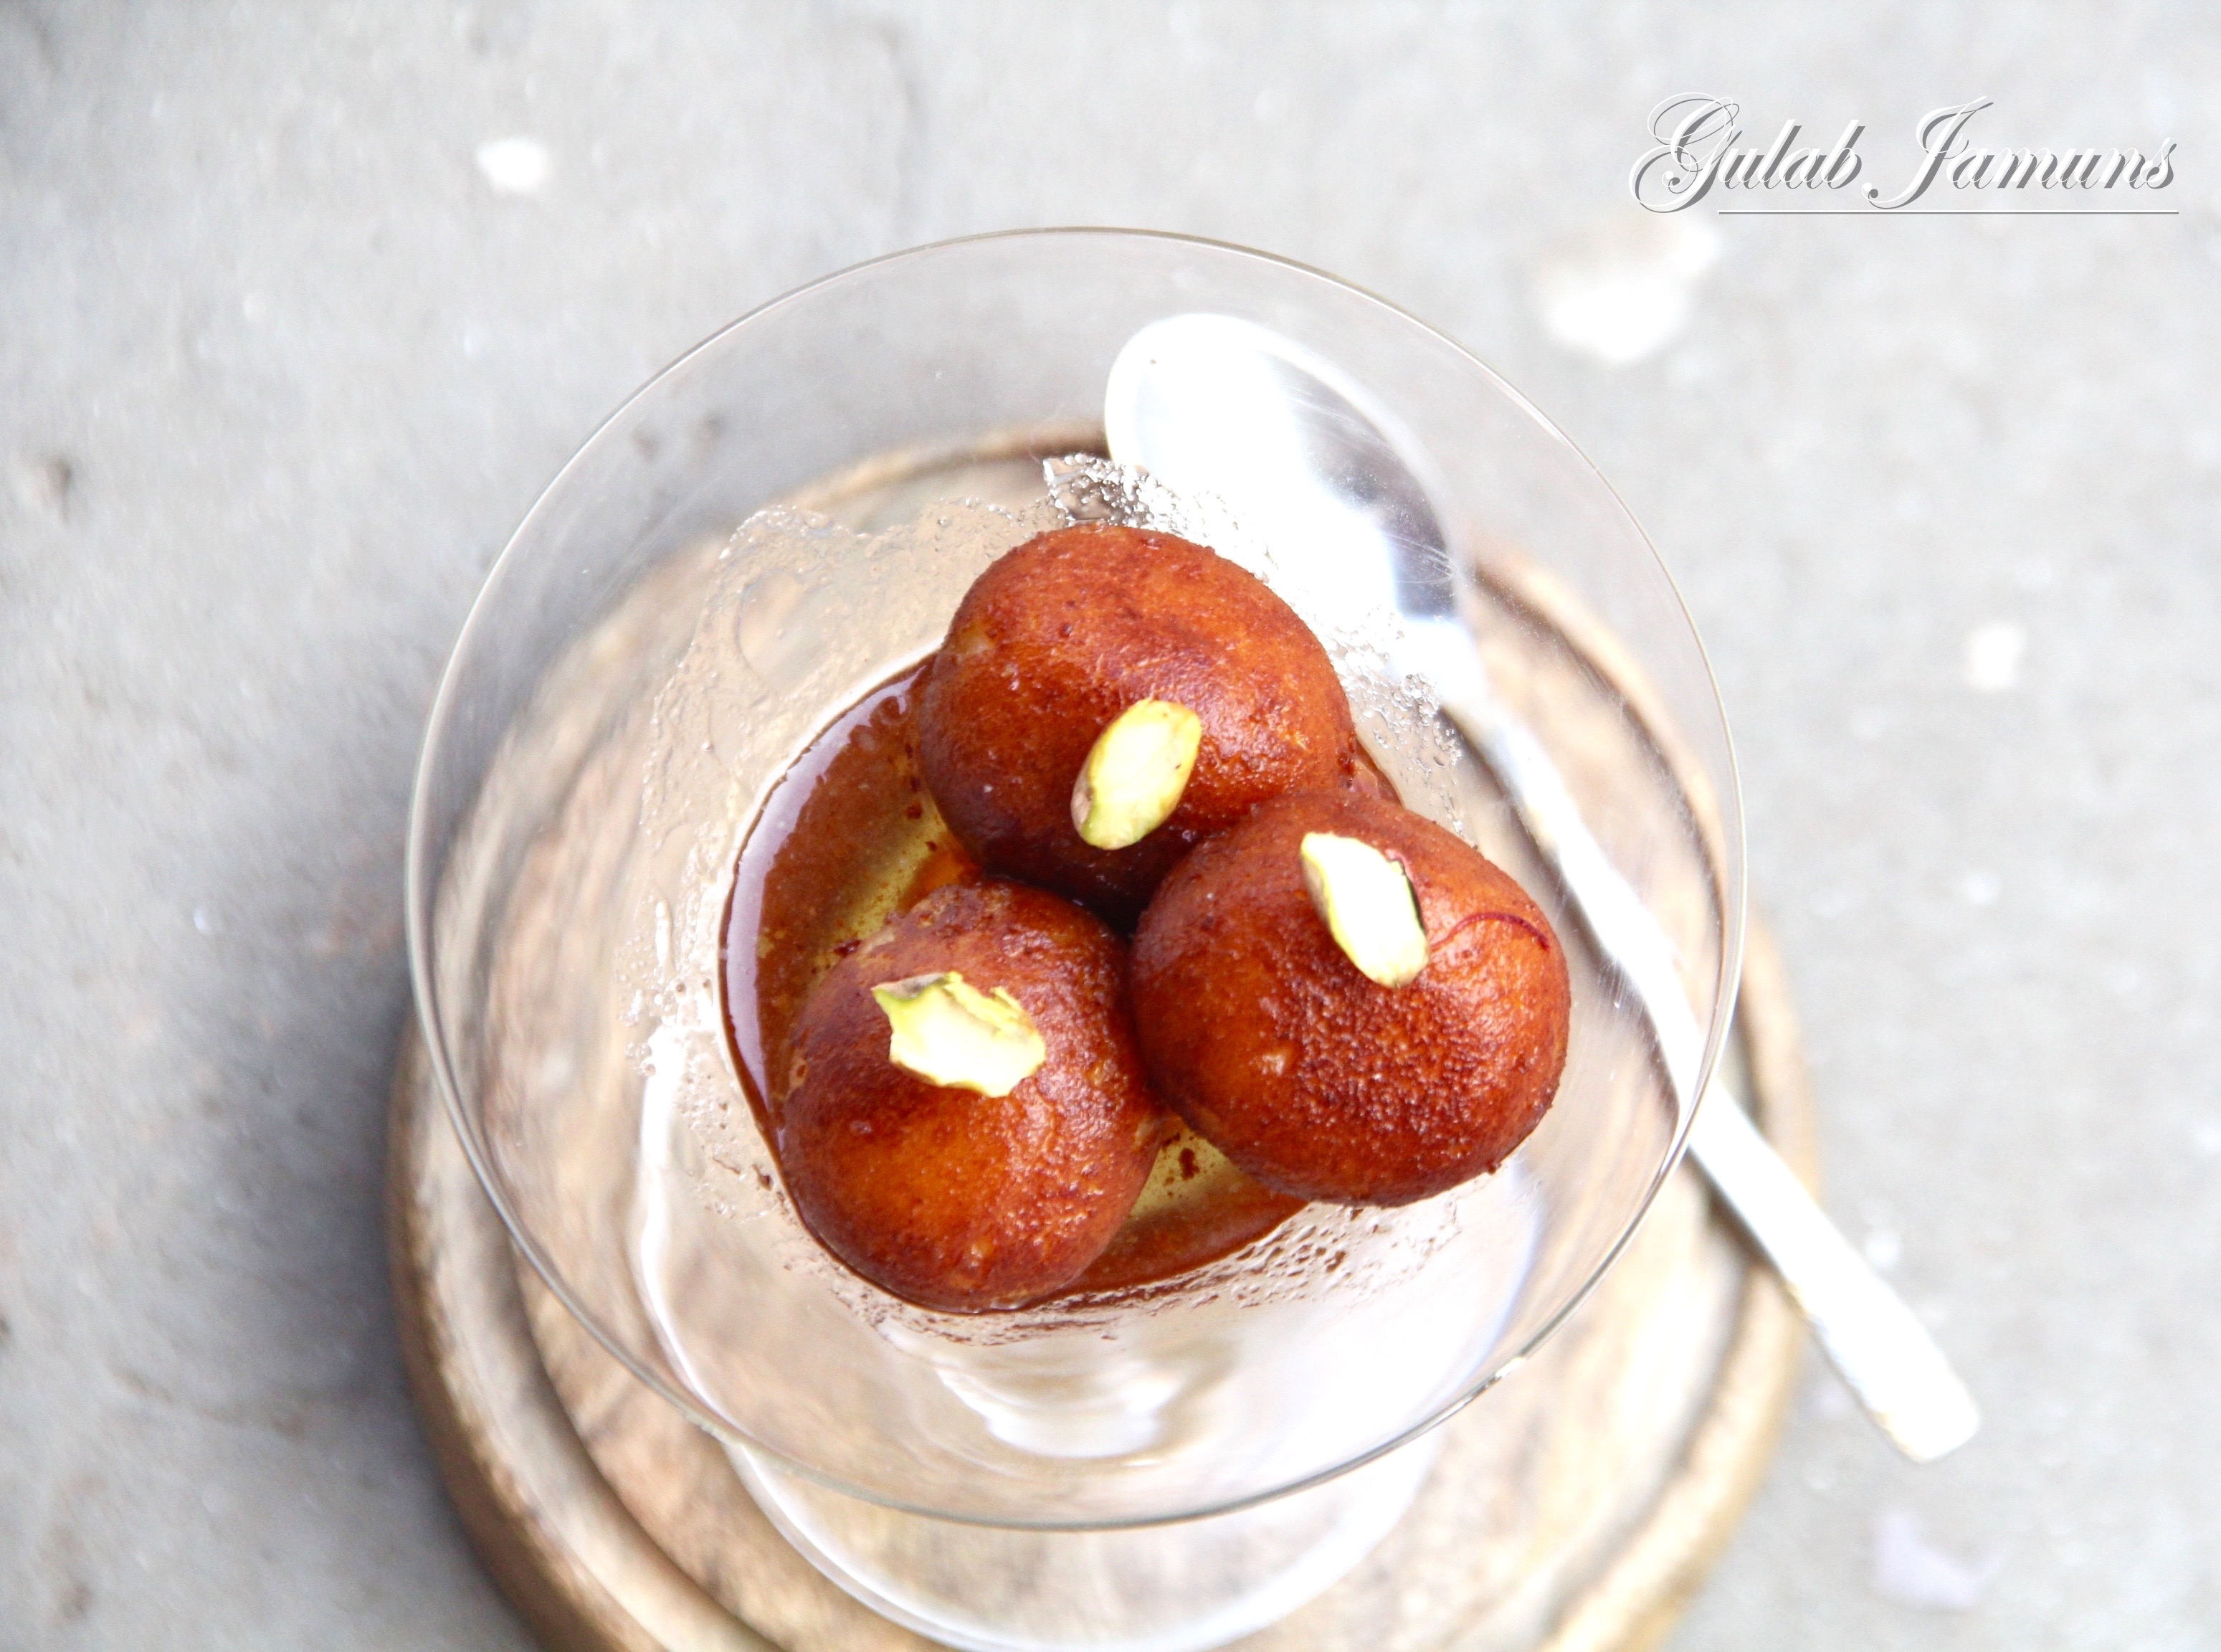 Gulab Jamuns, Indian Sweets, made at home